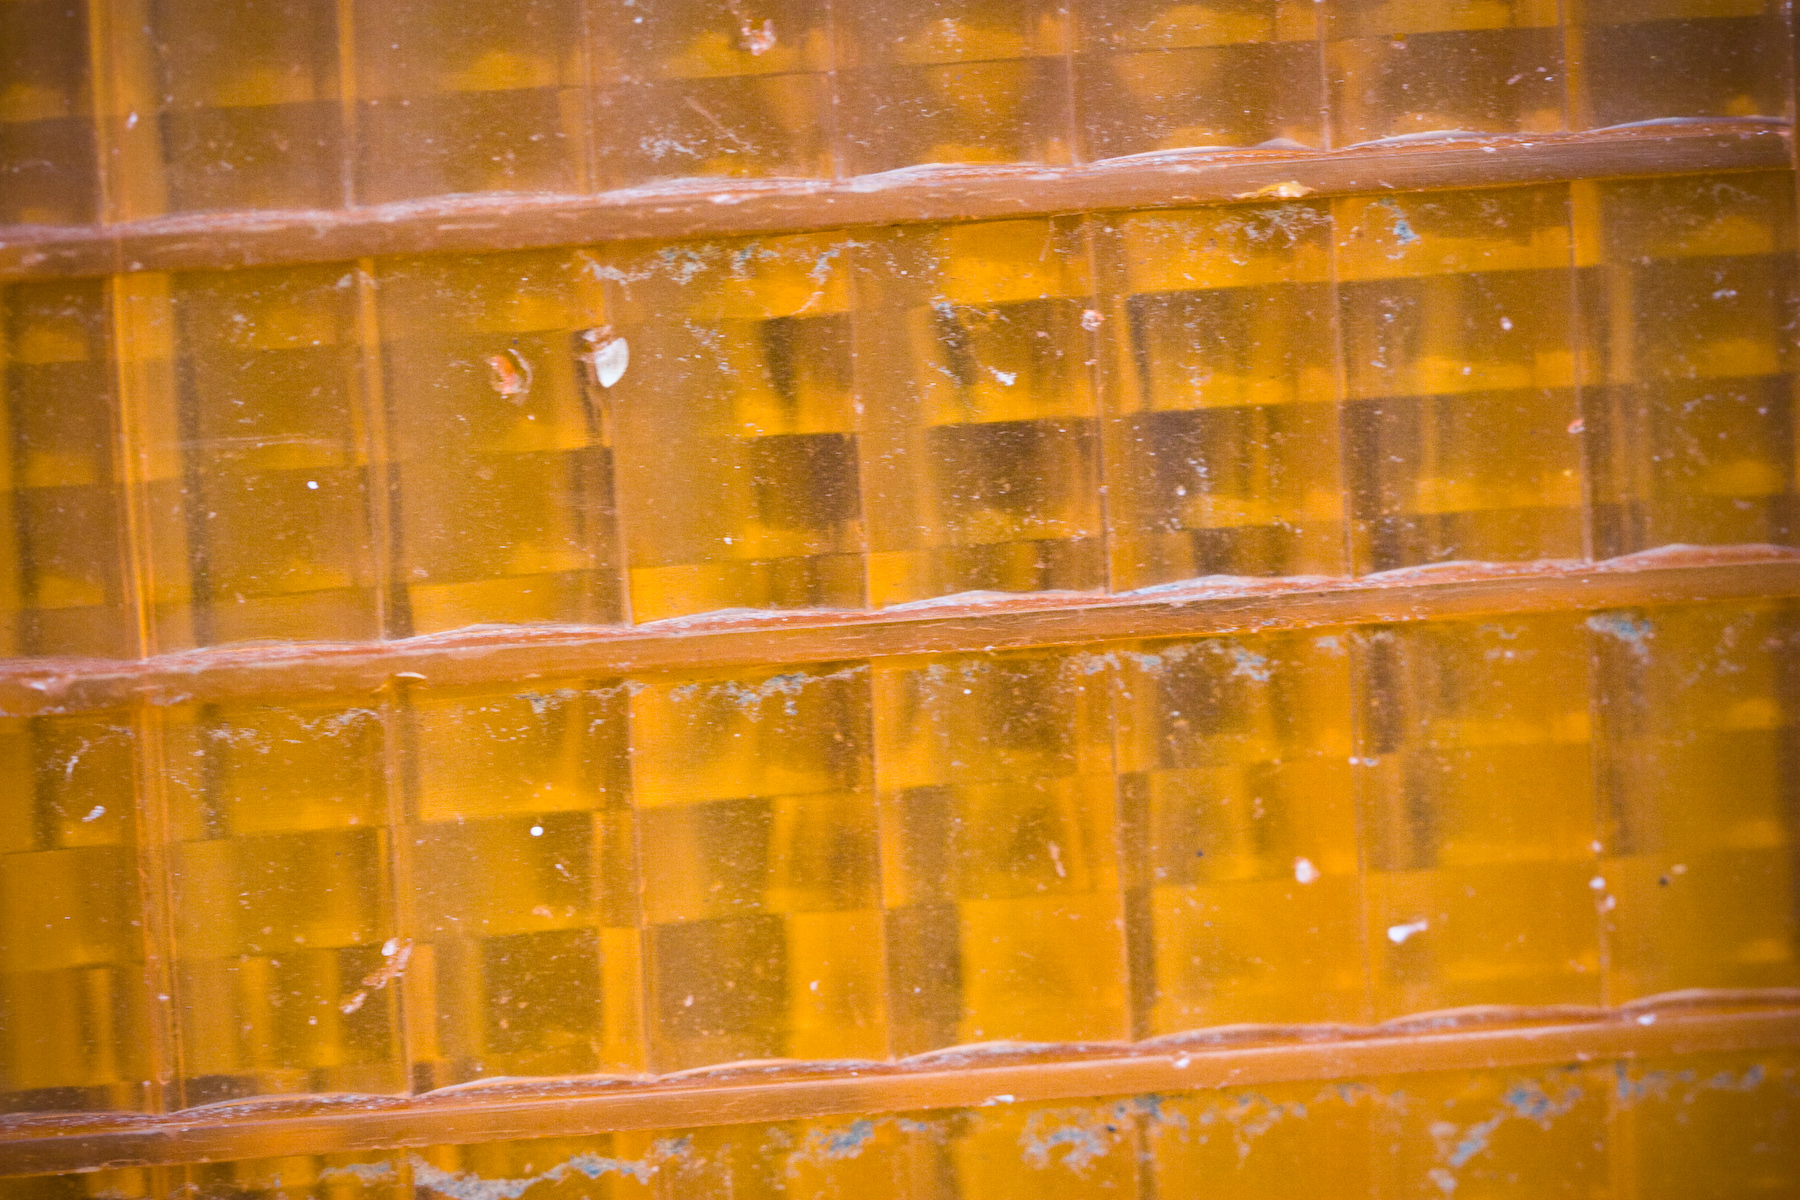 Orange plastic, Cracked, Light, Old, Orange, HQ Photo